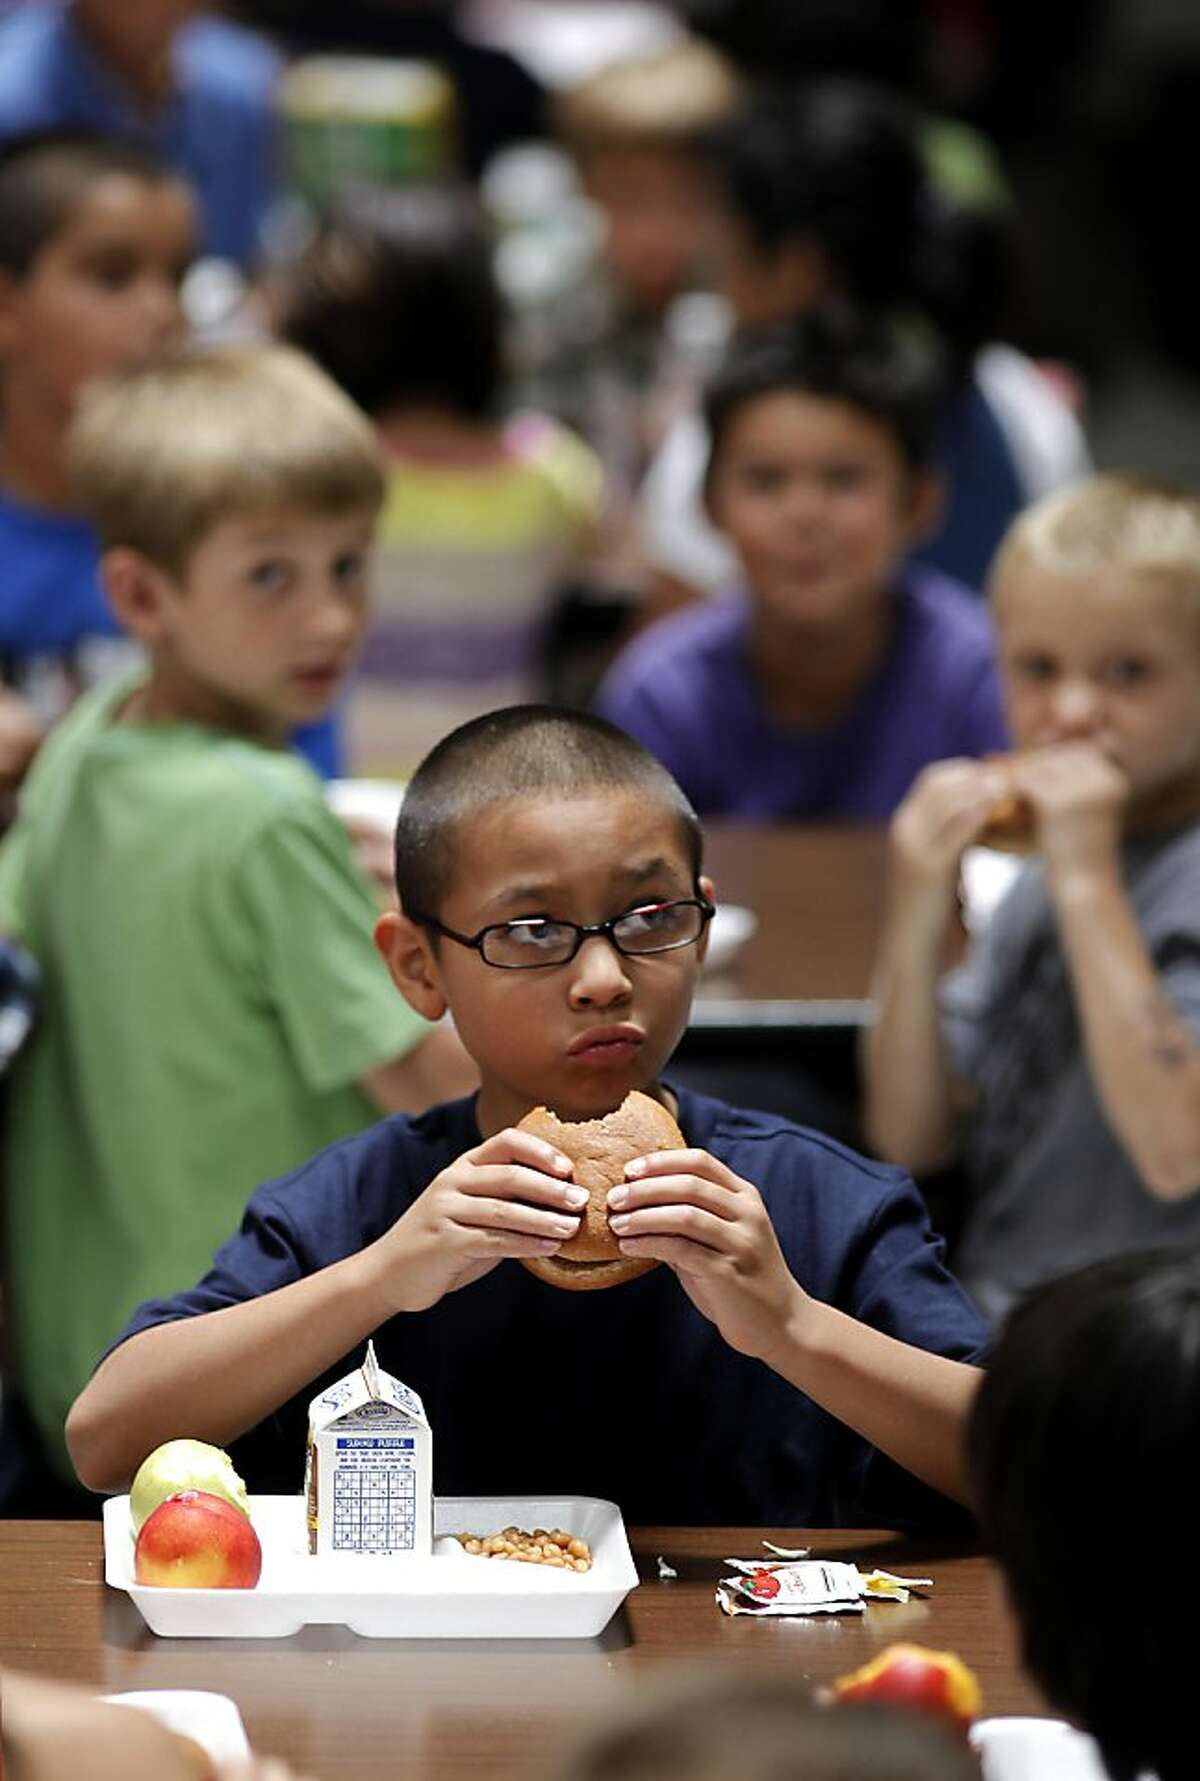 Third garder, Steven enjoys his burger with a whole grain bun during lunch at the Sisk Elementary school have lunch in Salida, Ca. on Wednesday August 10, 2011. Billy Reid a former French chef is now the the head of the Salida schools meal program, which makes the daily school lunch program healthy and delicious. Ran on: 09-05-2011 A third-graders burger has a whole grain bun at Sisk Elementary in Salida (Stanislaus County). Ran on: 09-05-2011 A Sisk Elementary third-grader eats a burger on a whole-grain bun in Salida (Stanislaus County).